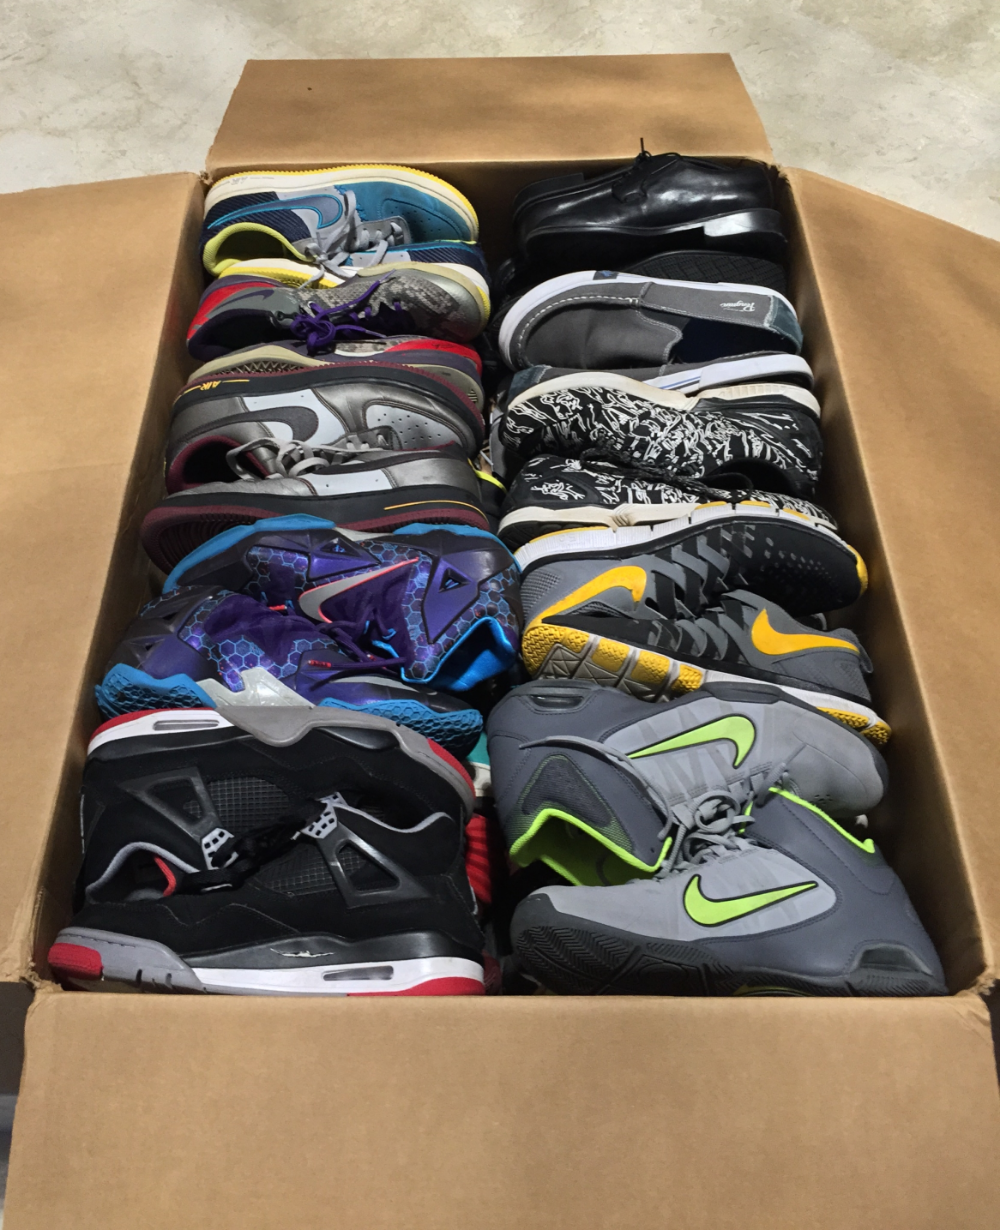 Sole Relief's first donation to Soles4Soles - 32 pairs of sneakers.